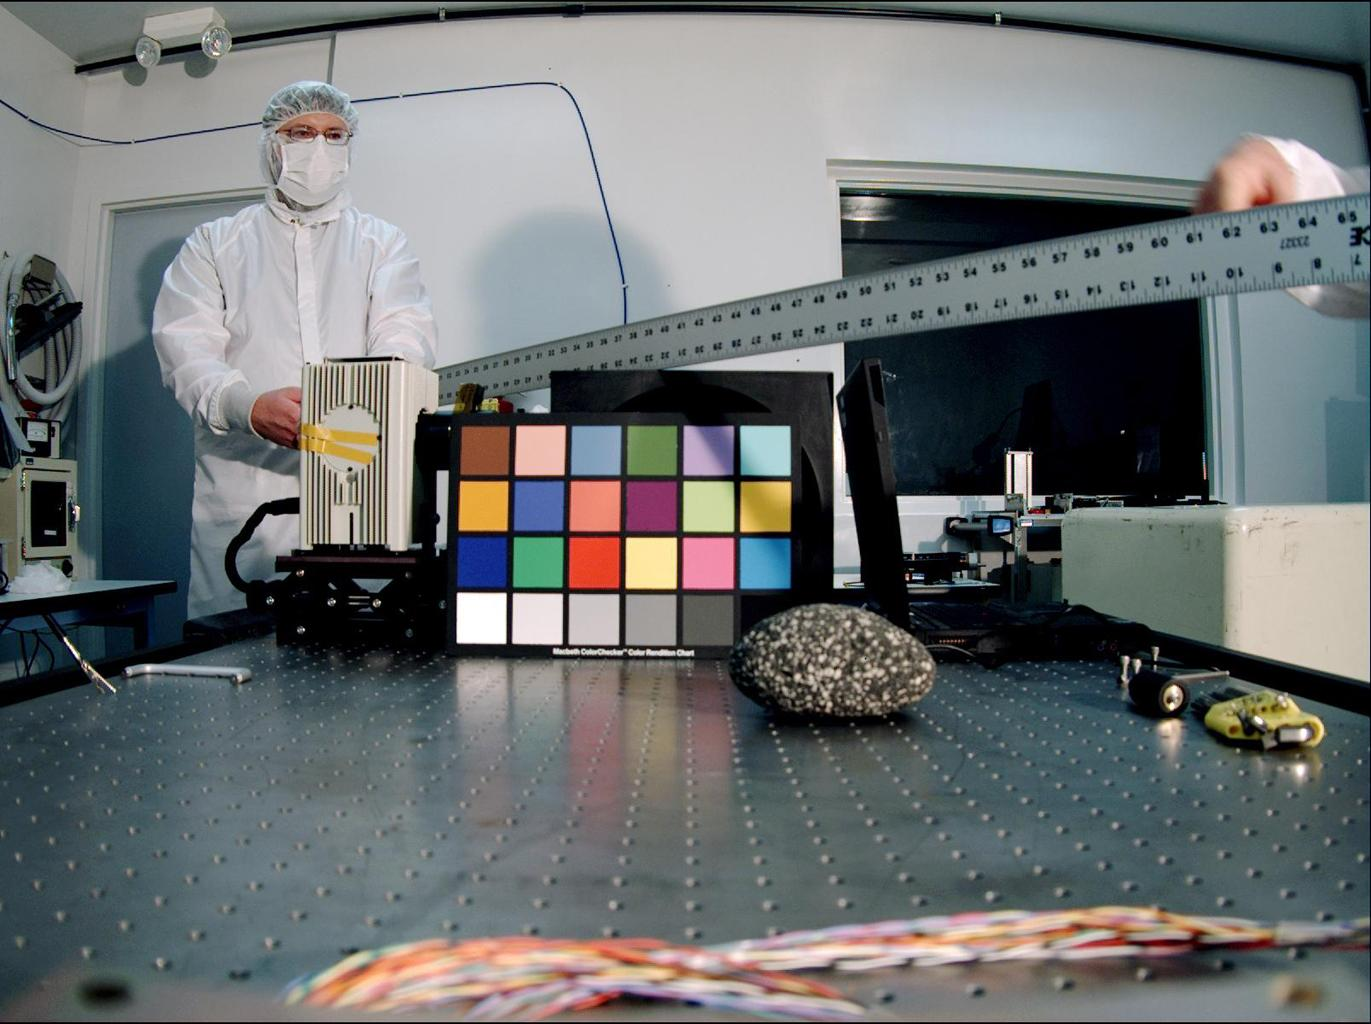 Ken Edgett, deputy principal investigator for NASA's Mars Descent Imager, holds a ruler used as a depth-of-field test target. The instrument took this image inside the Malin Space Science Systems clean room in San Diego, CA, during calibration testing.